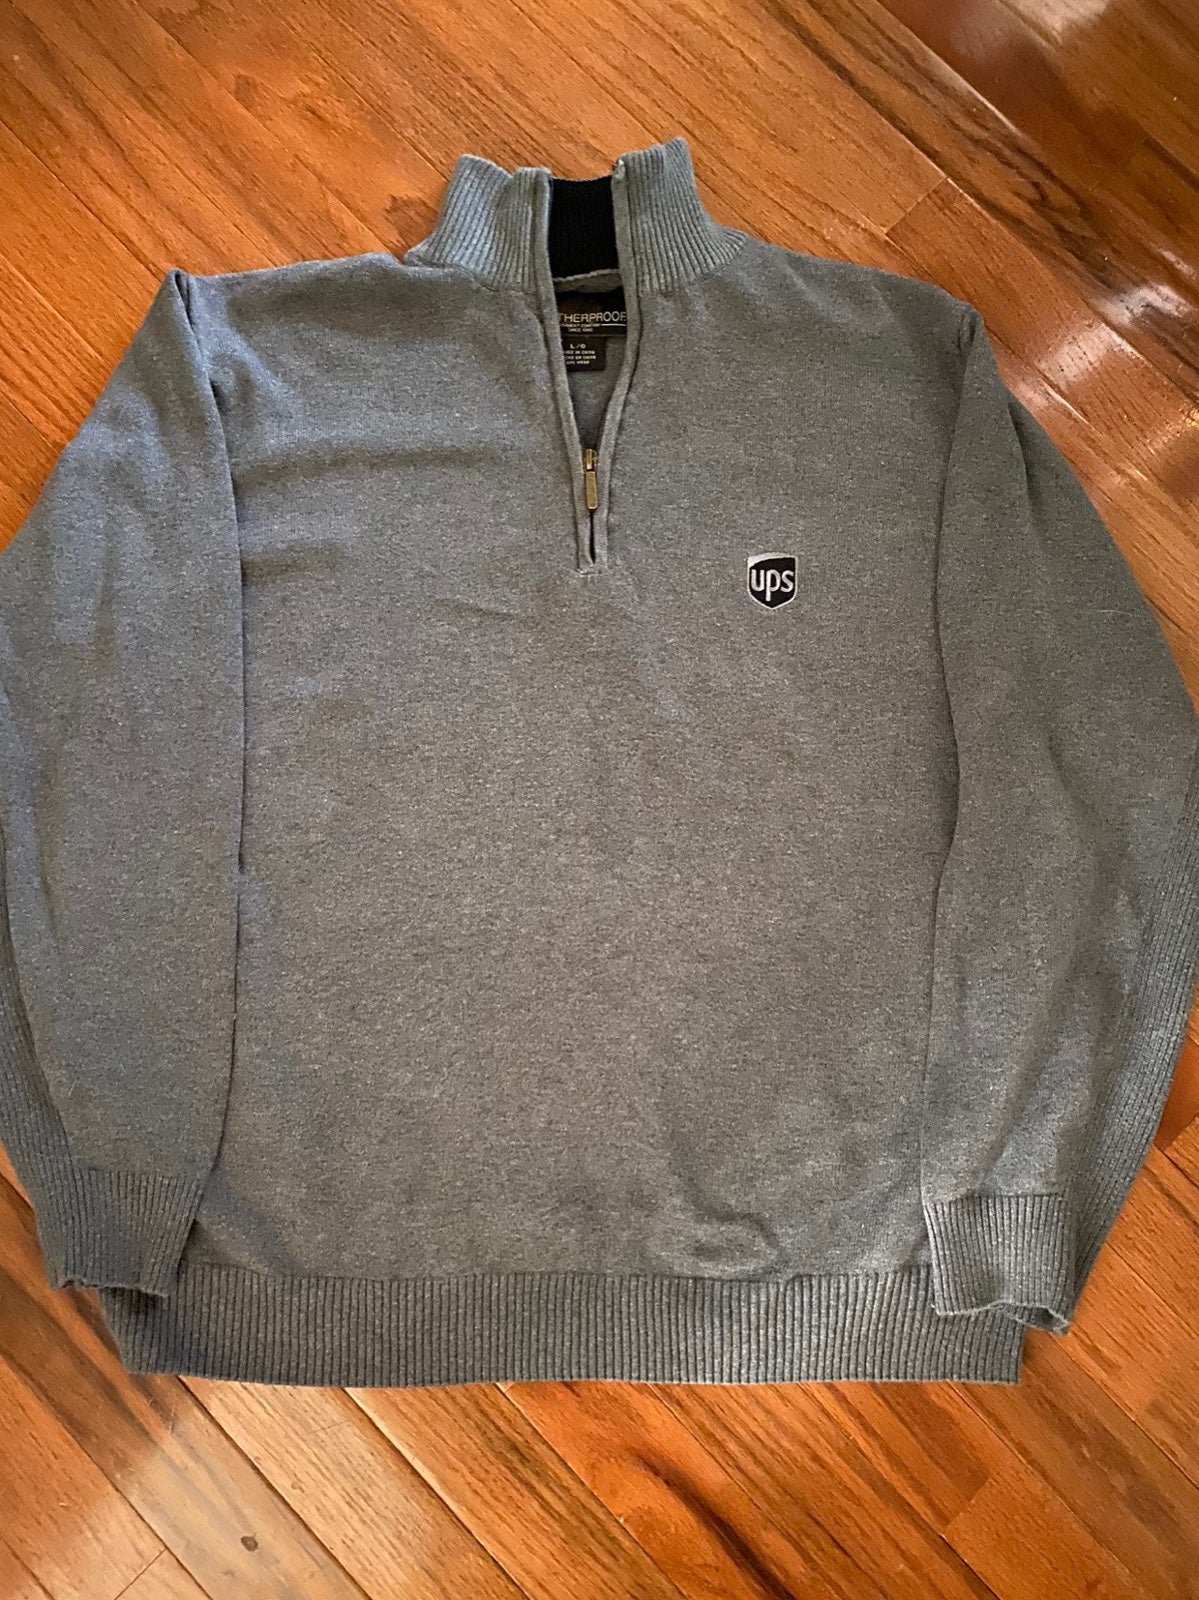 UPS Embroidred Logo Sweater